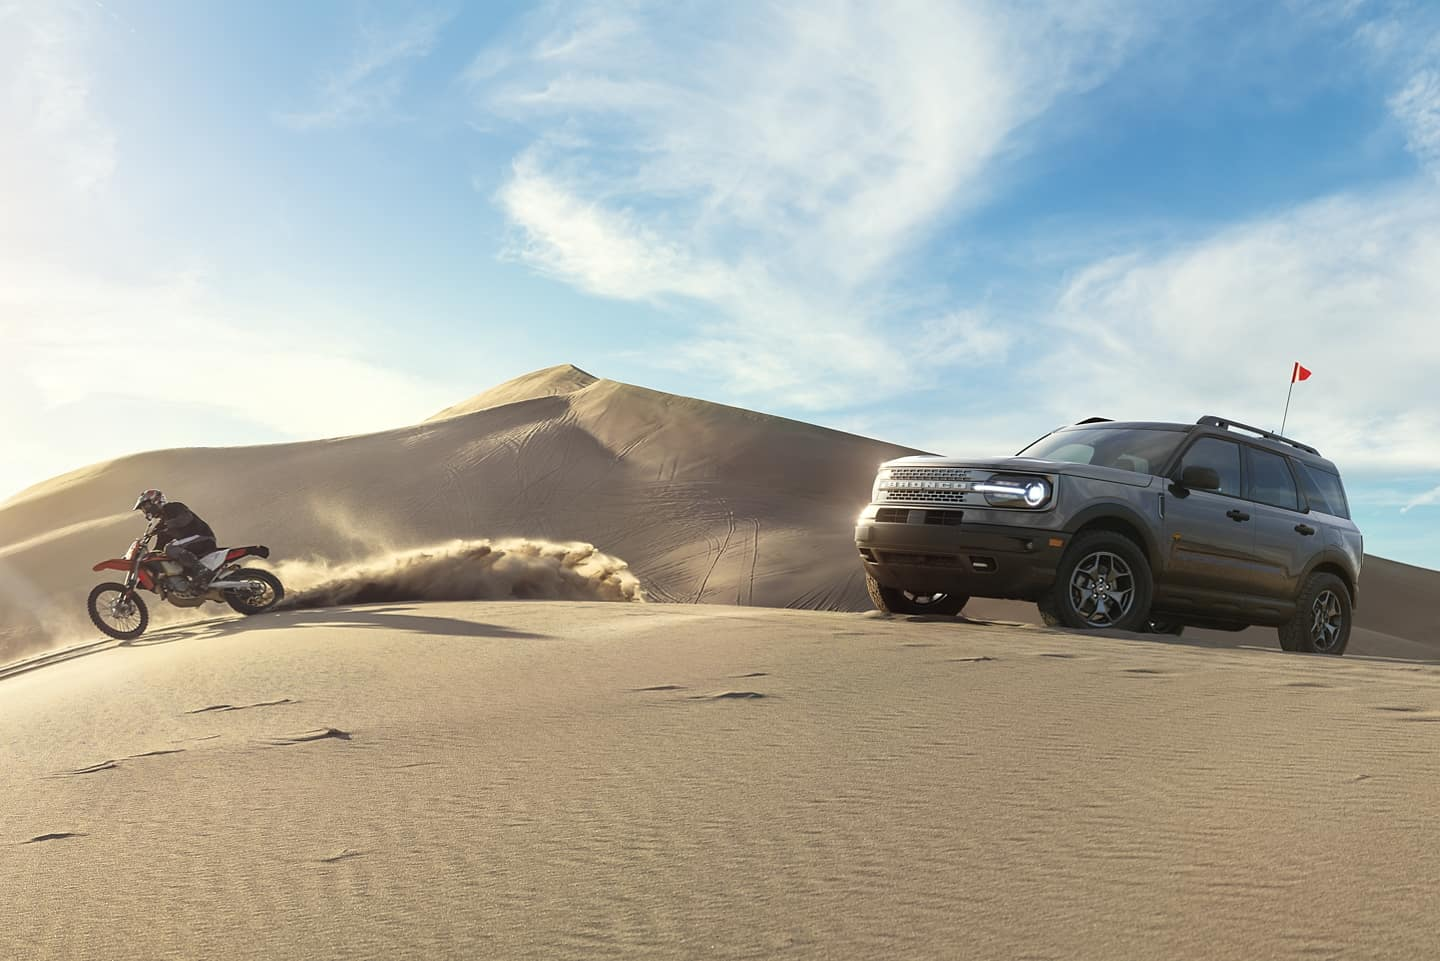 Take the Ford Bronco sport with you wherever you go.